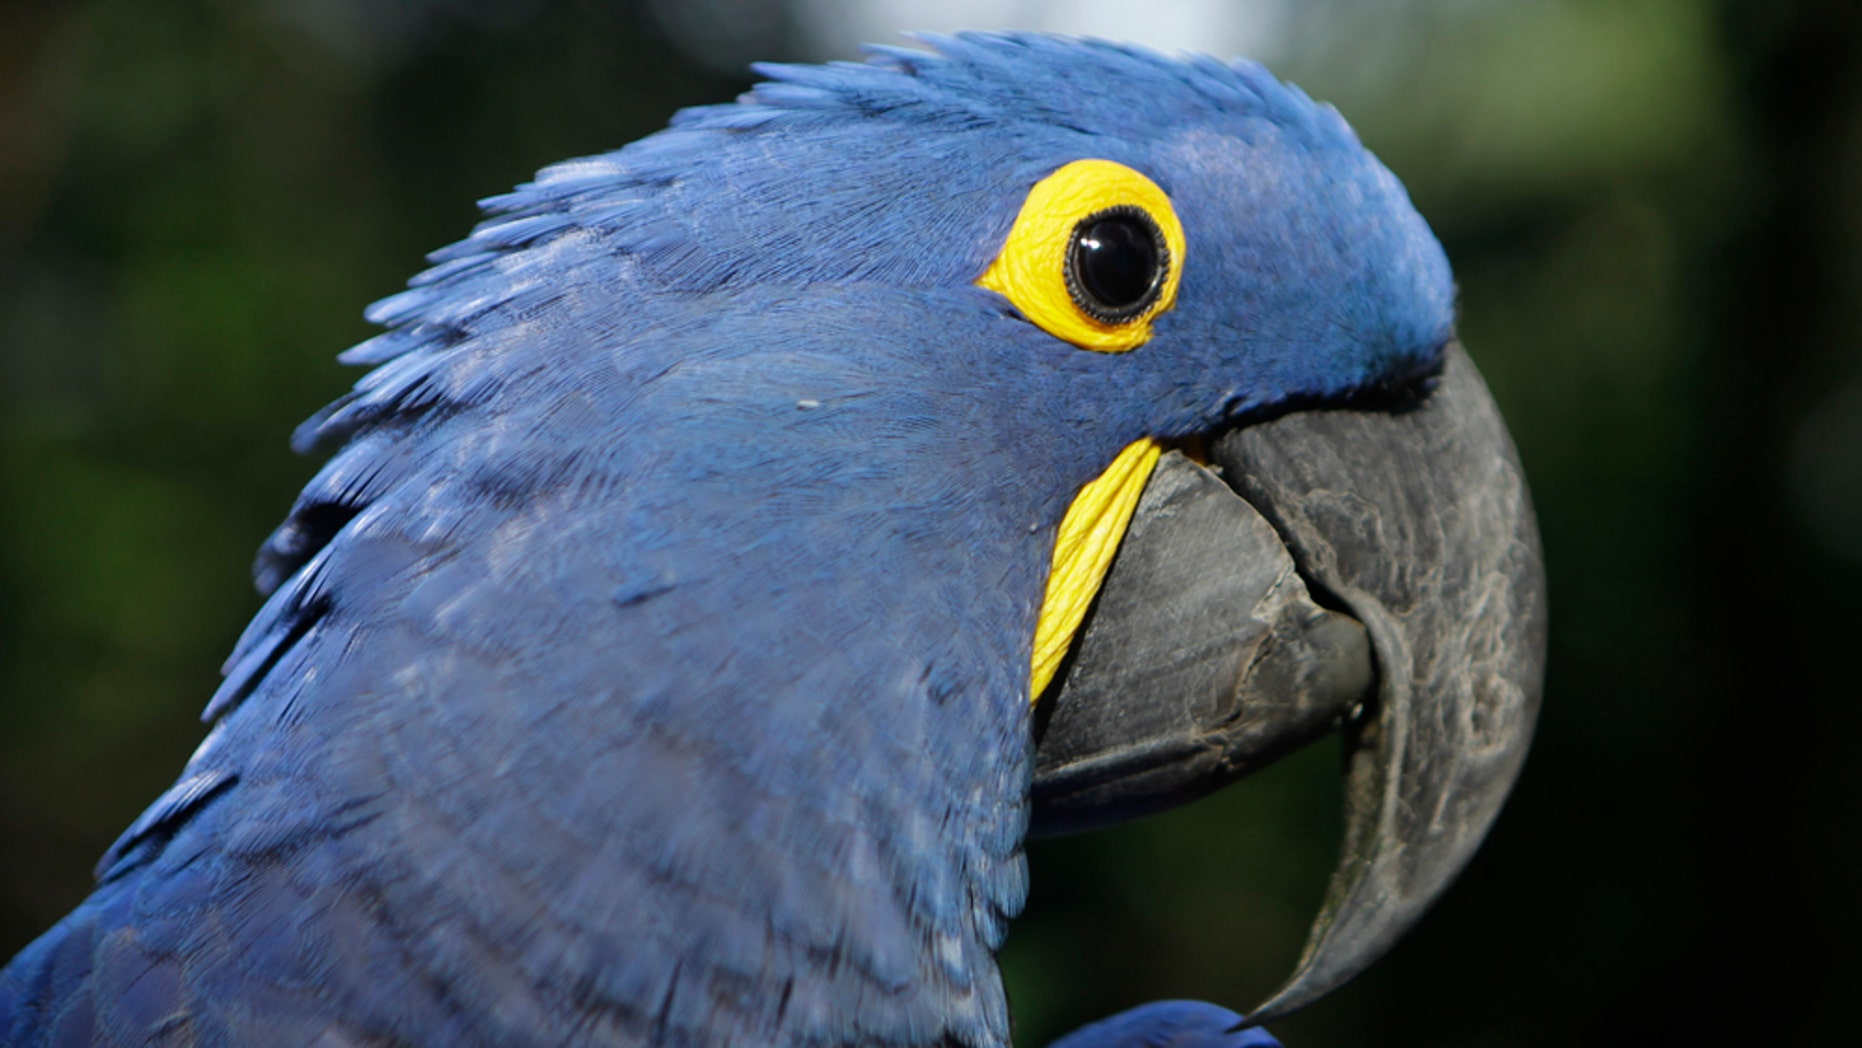 """Coco, a blue parrot, is perched on a branch at the zoo in Asuncion, Paraguay, Tuesday May 24, 2011. Coco arrived at the zoo eight years ago when he was retrieved from a band of wildlife traffickers after their arrest. According to the zoo's vet, Coco has since learned to say """"hello,"""" and will start to dance at the sound of cumbia music. The veterinarian staff is looking for a partner for the endangered cobalt blue parrot.  (AP Photo/Jorge Sanez)"""